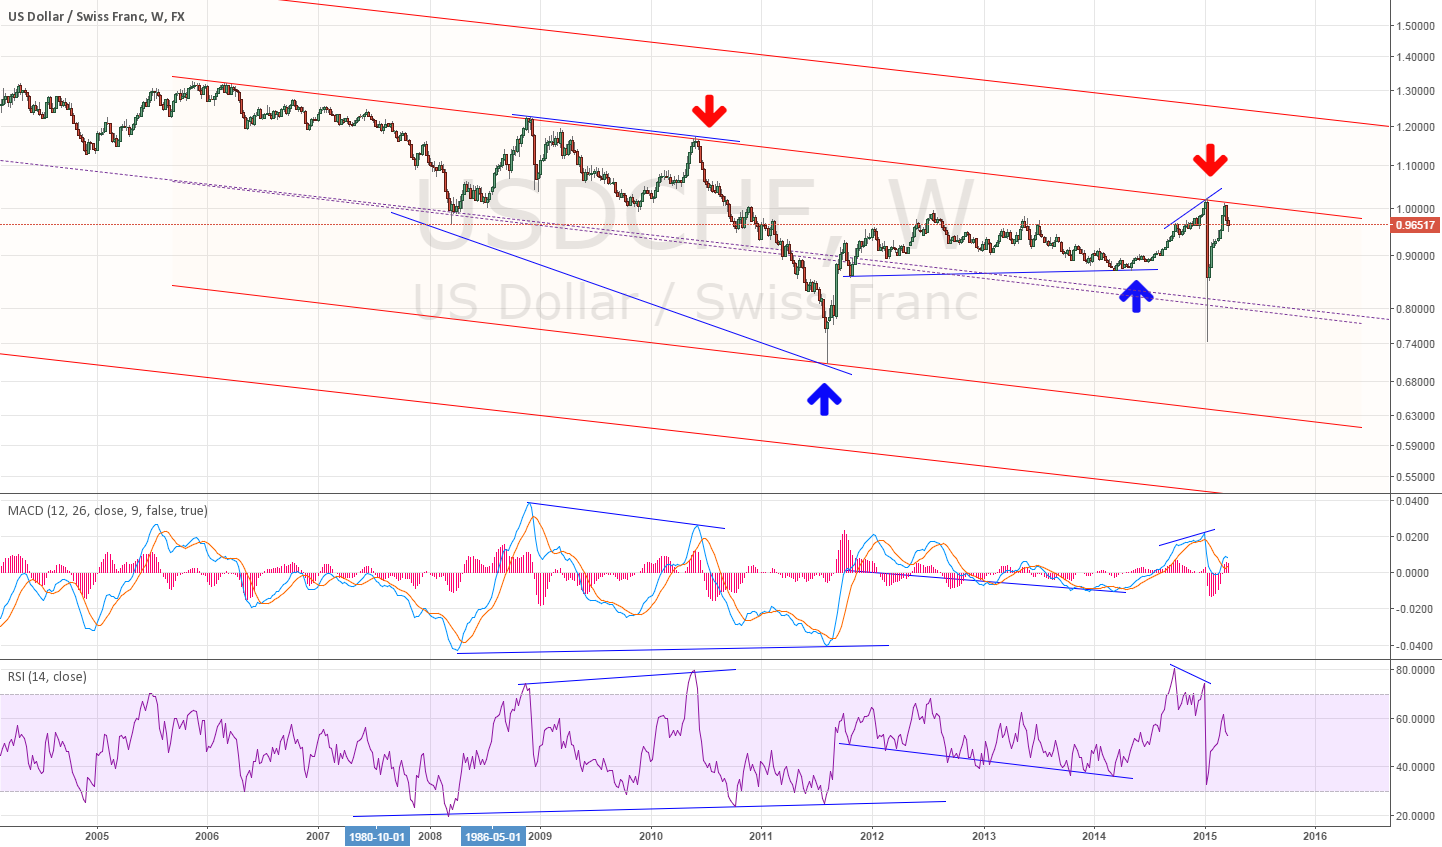 Weekly for USDCHF divergence ~